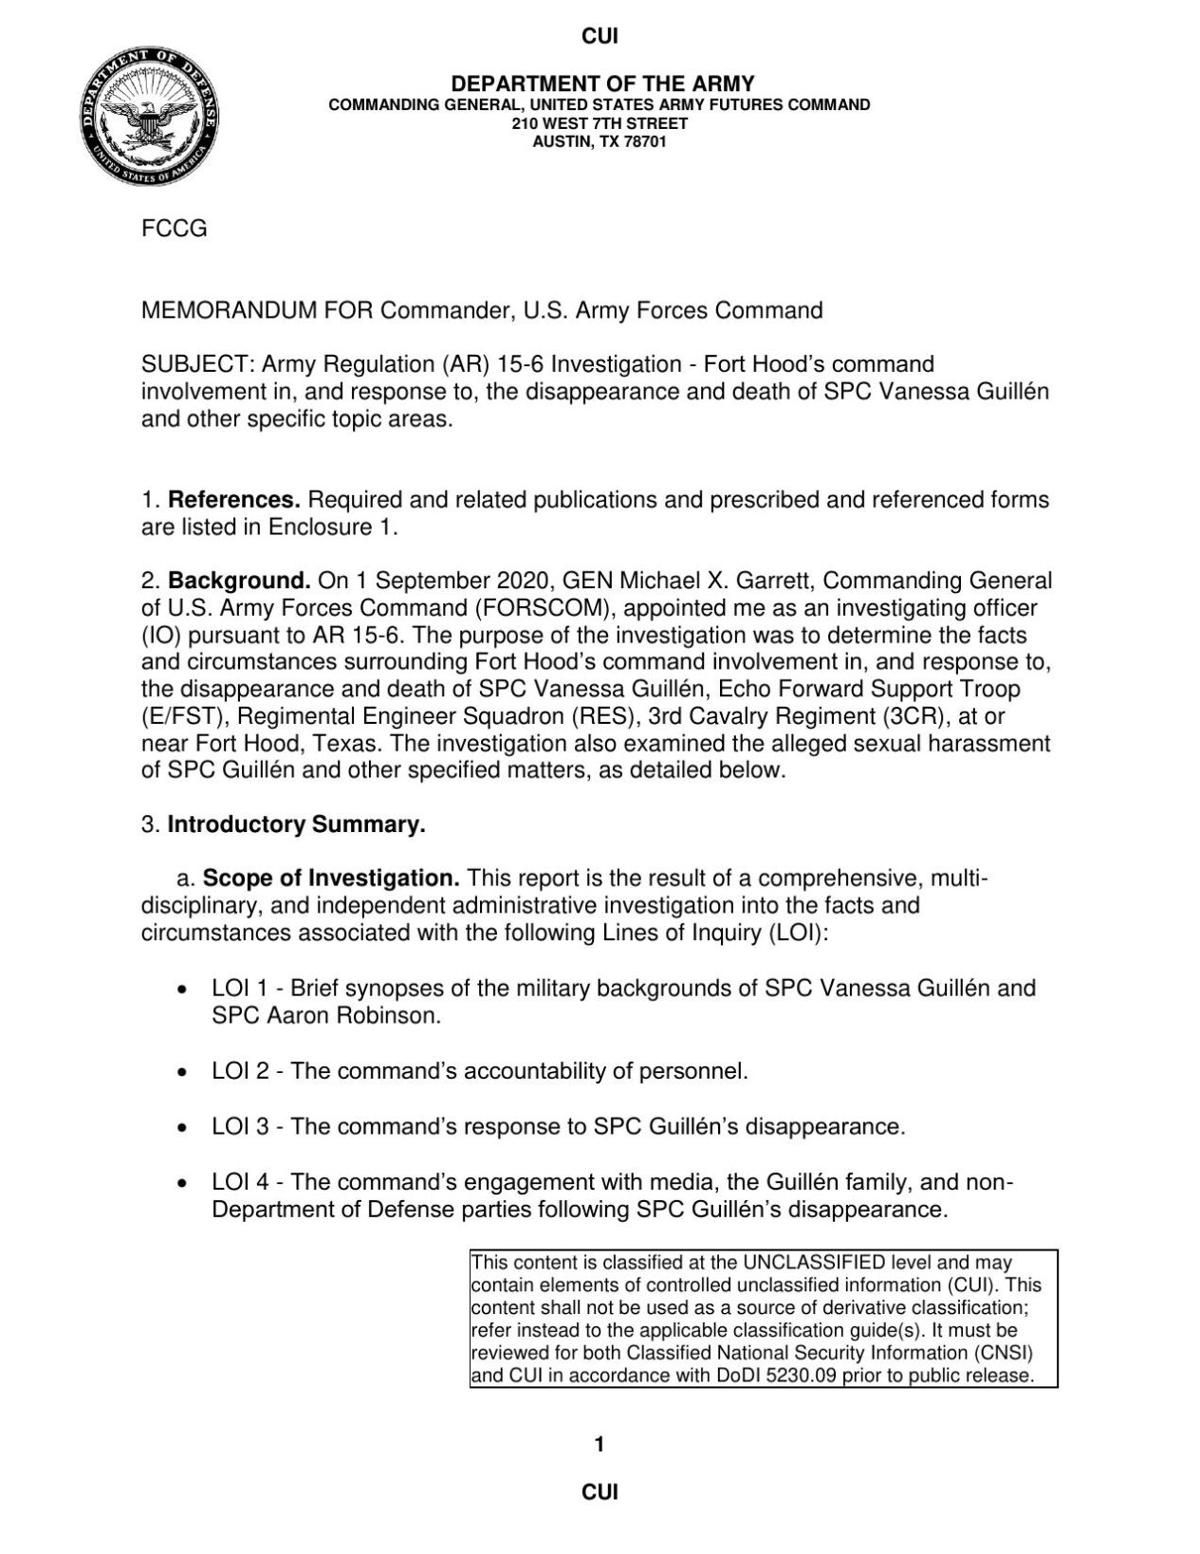 Guillen Fort Hood Investigation - Findings and Recommendations + CG Action Memo - Redacted_Redacted (29 Apr 21)